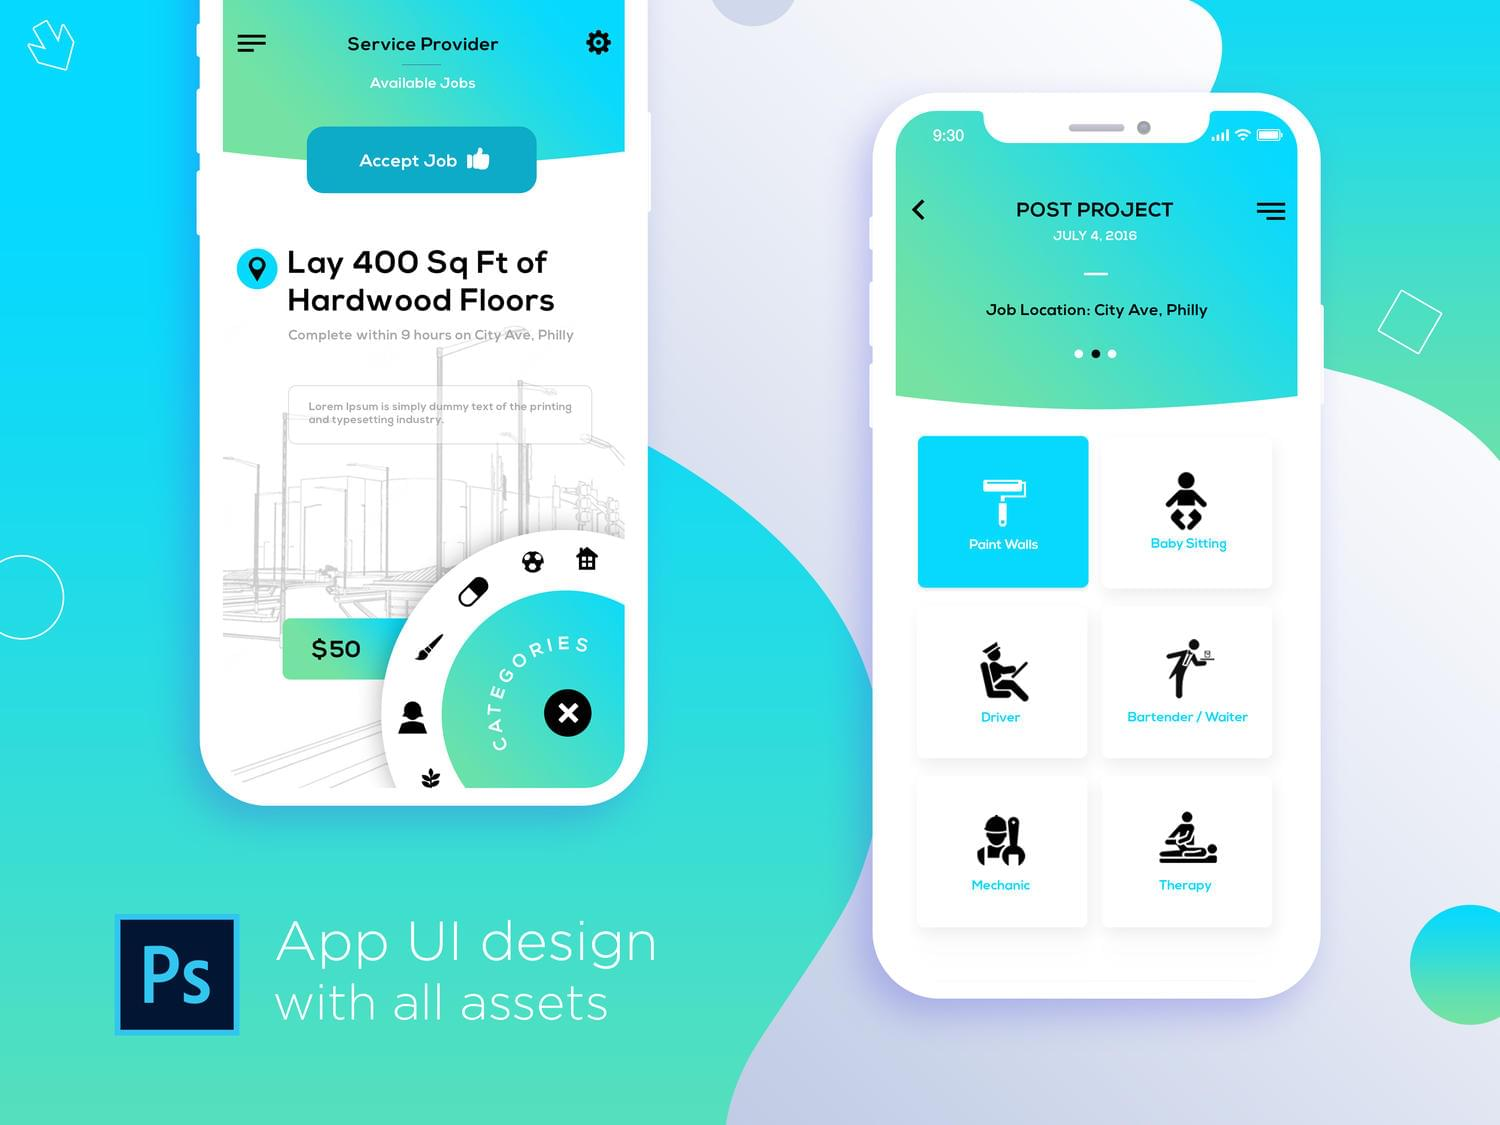 Mobile App interface for iOS and Android design by idesignera - 113428